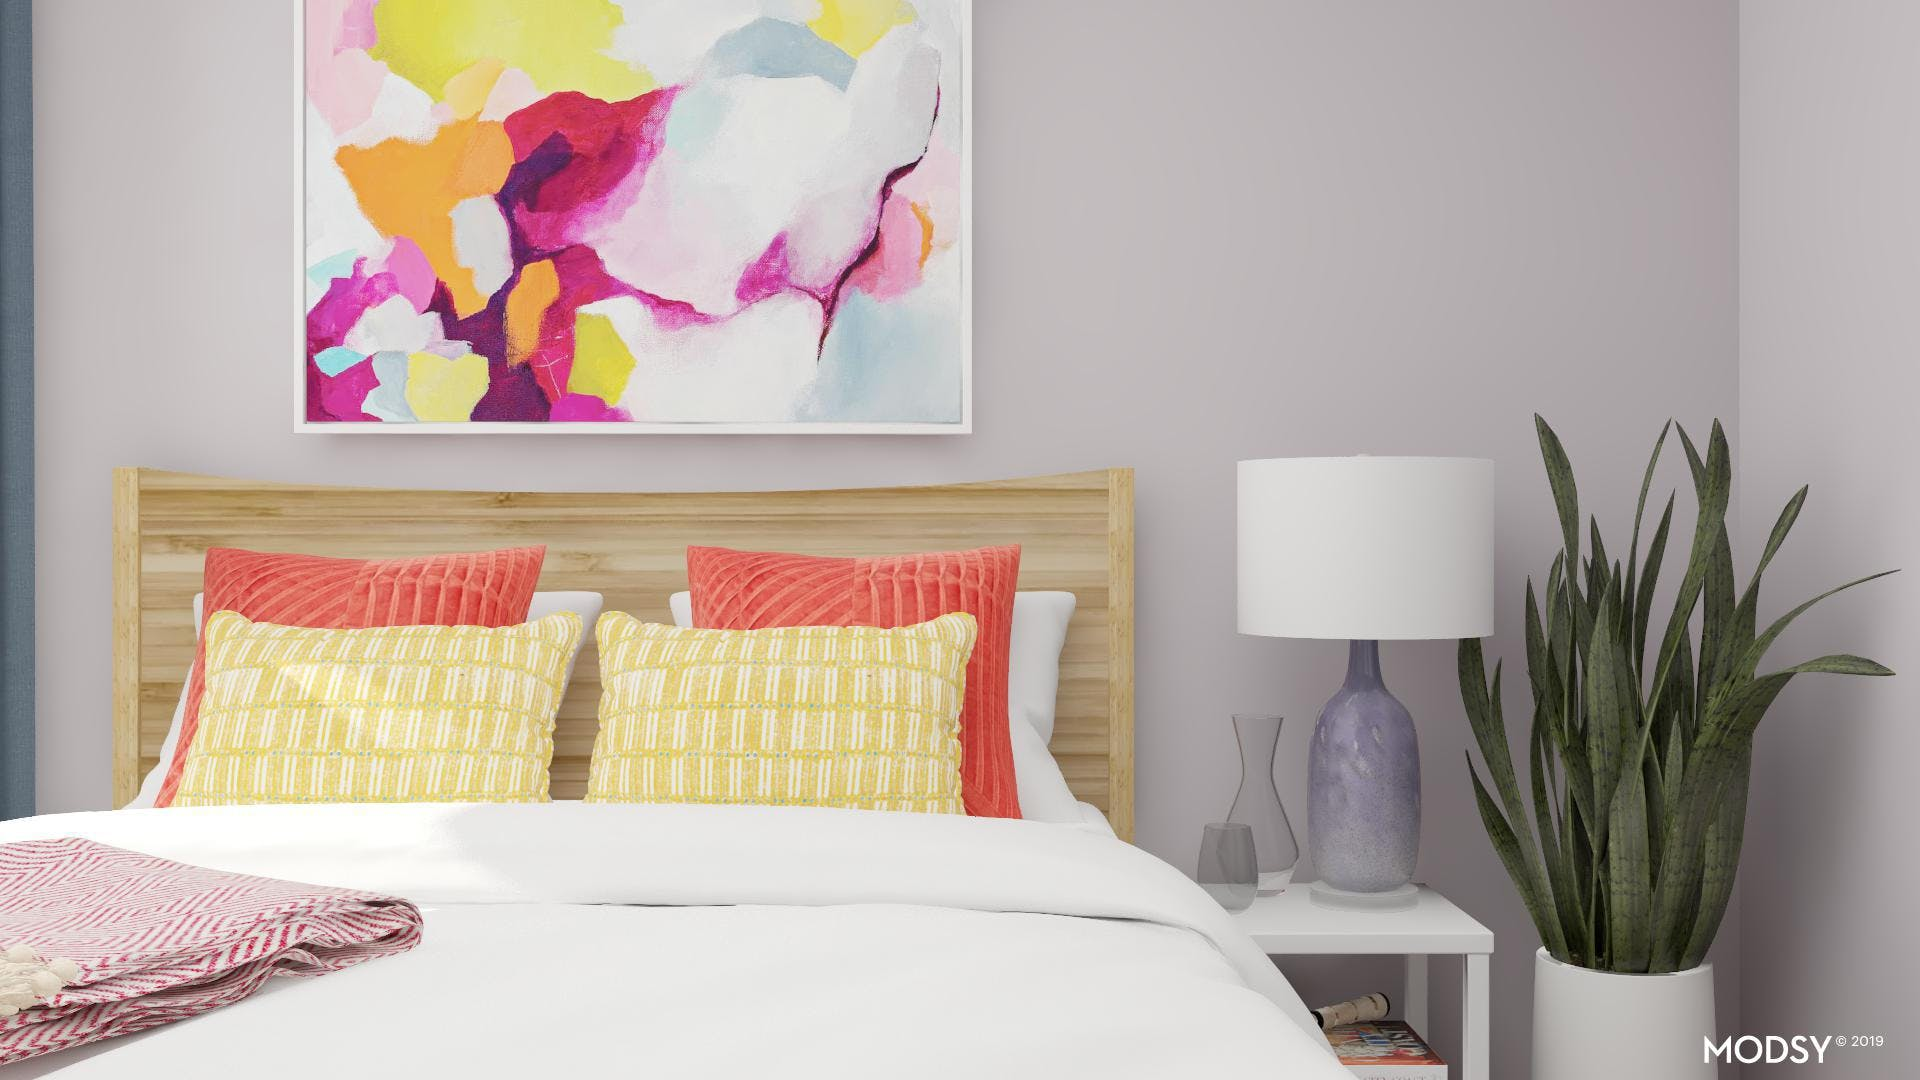 Bedroom With Bright Multi Colors